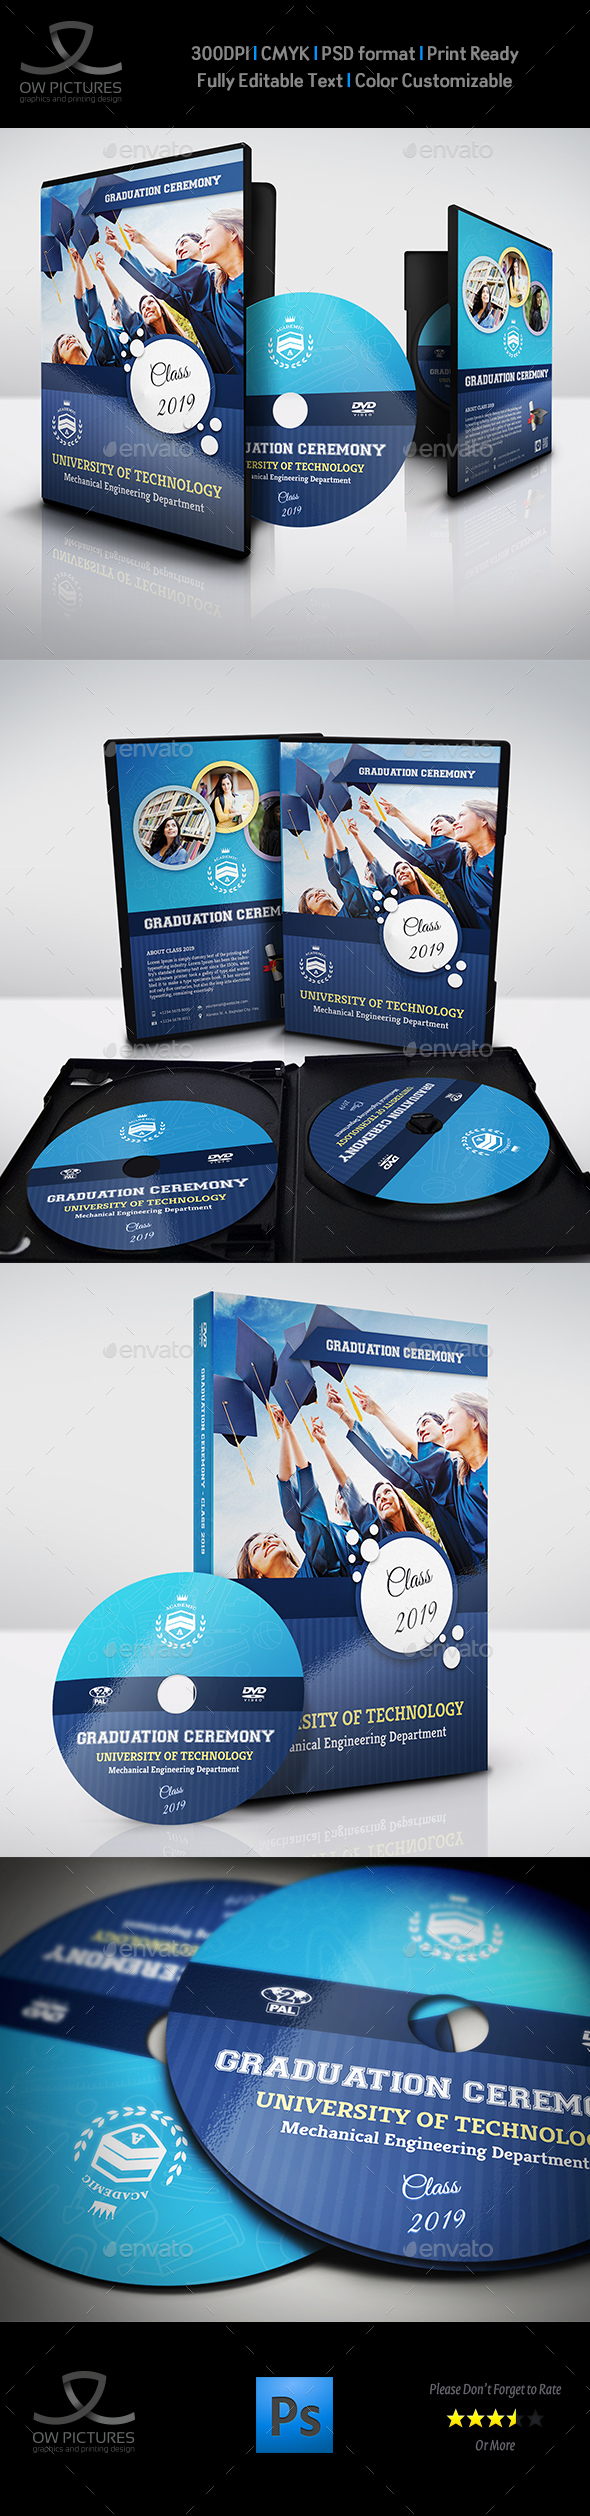 Graduation Ceremony Template from previews.customer.envatousercontent.com